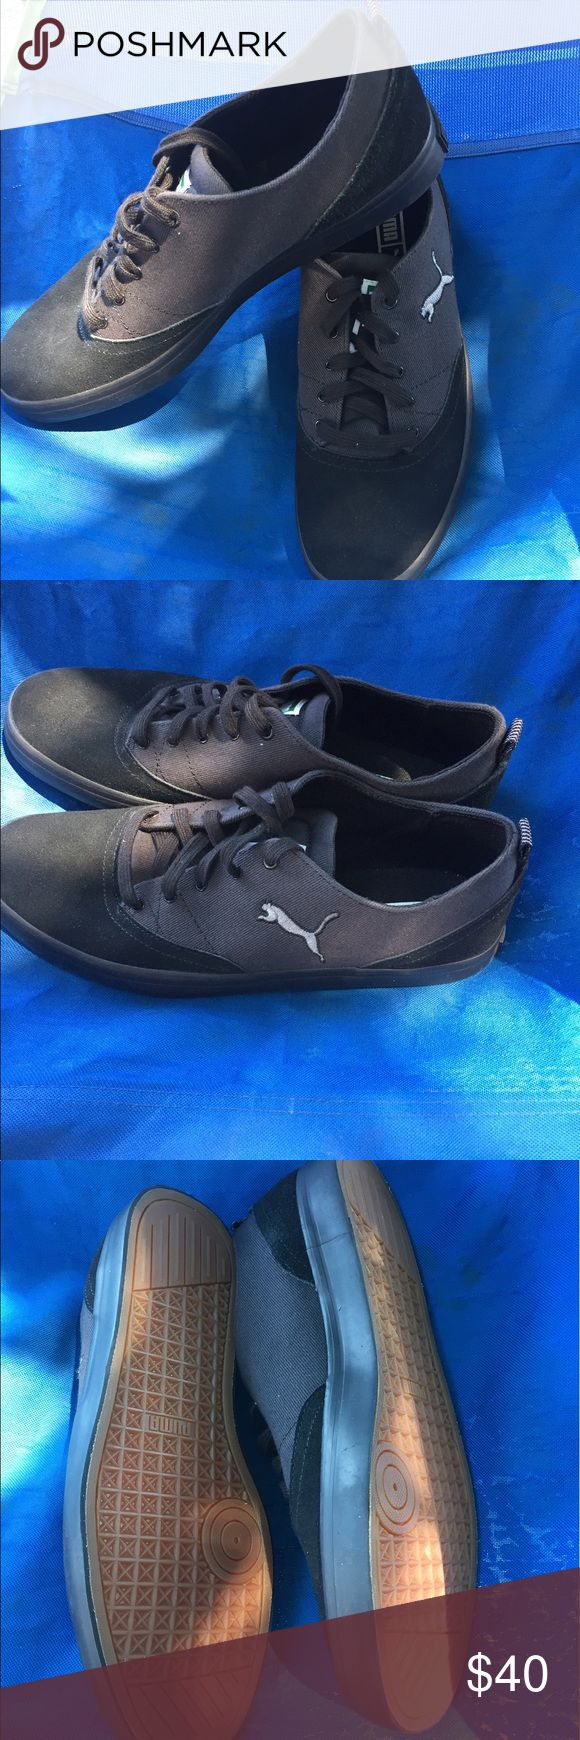 Puma men's casual sneakers size 9.5 new no box This men's shoes are brand new no box size 9.5 no stains no rips in excellent condition Puma Shoes Sneakers